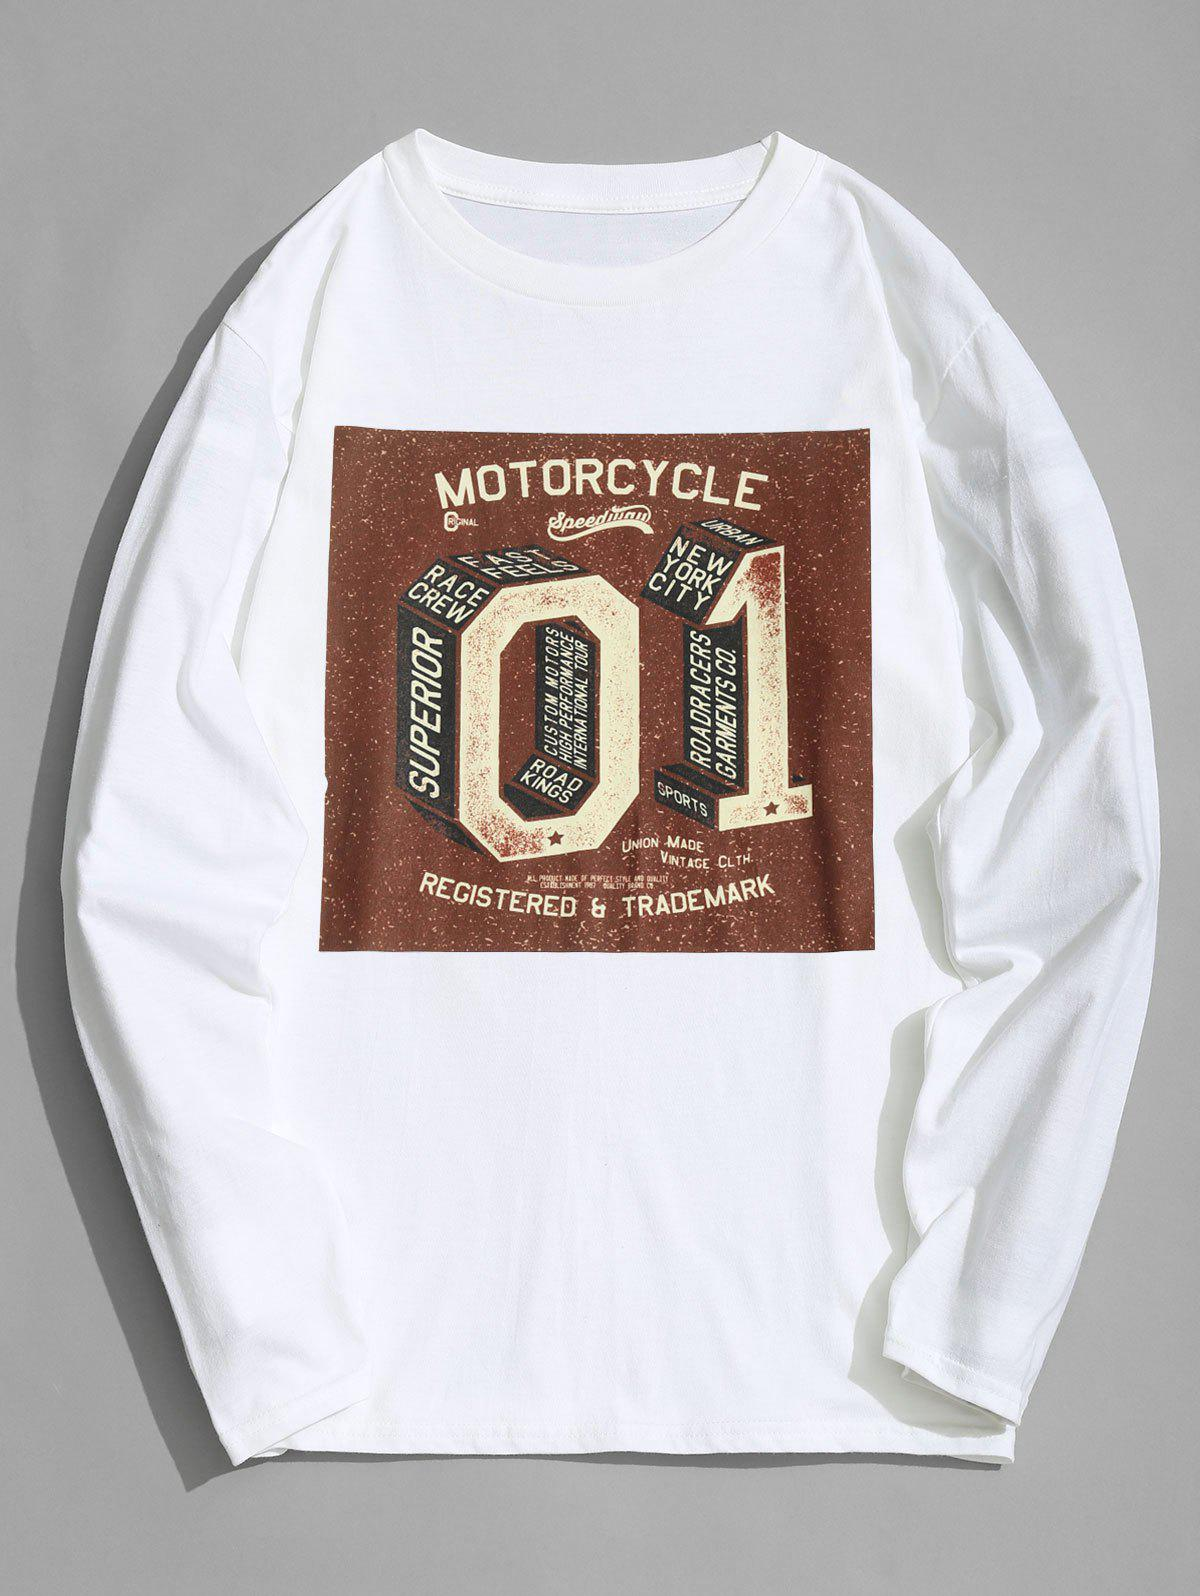 Motorcycle Graphic Long Sleeve T-shirt 255229401